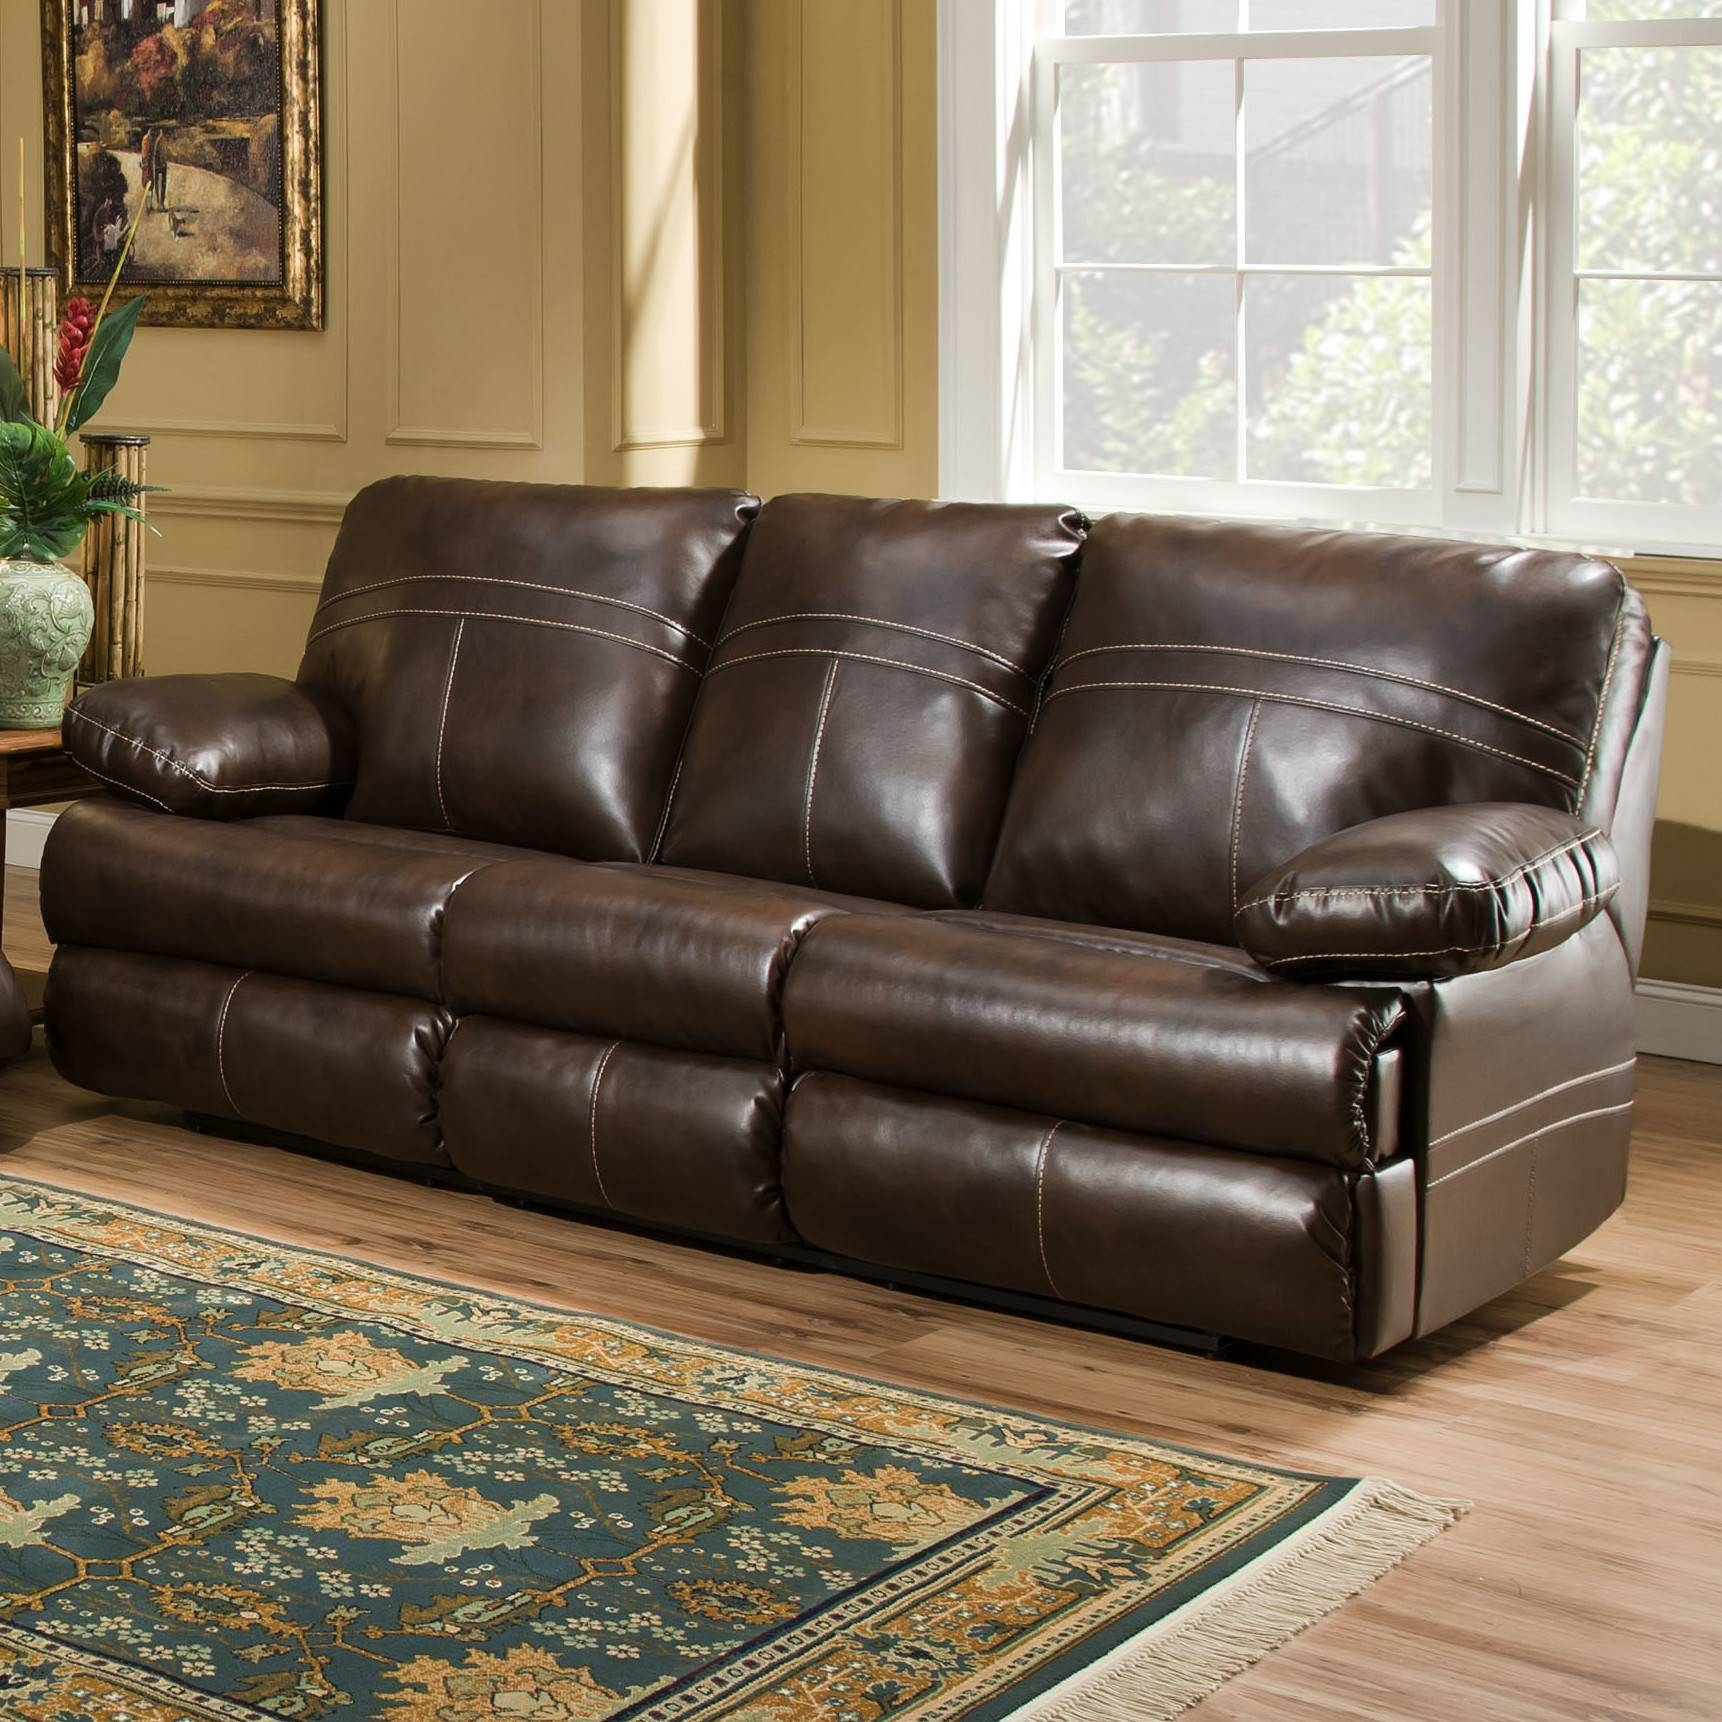 Furniture & Rug: Fancy Sectional Sleeper Sofa For Best Home throughout King Size Sleeper Sofa Sectional (Image 4 of 30)